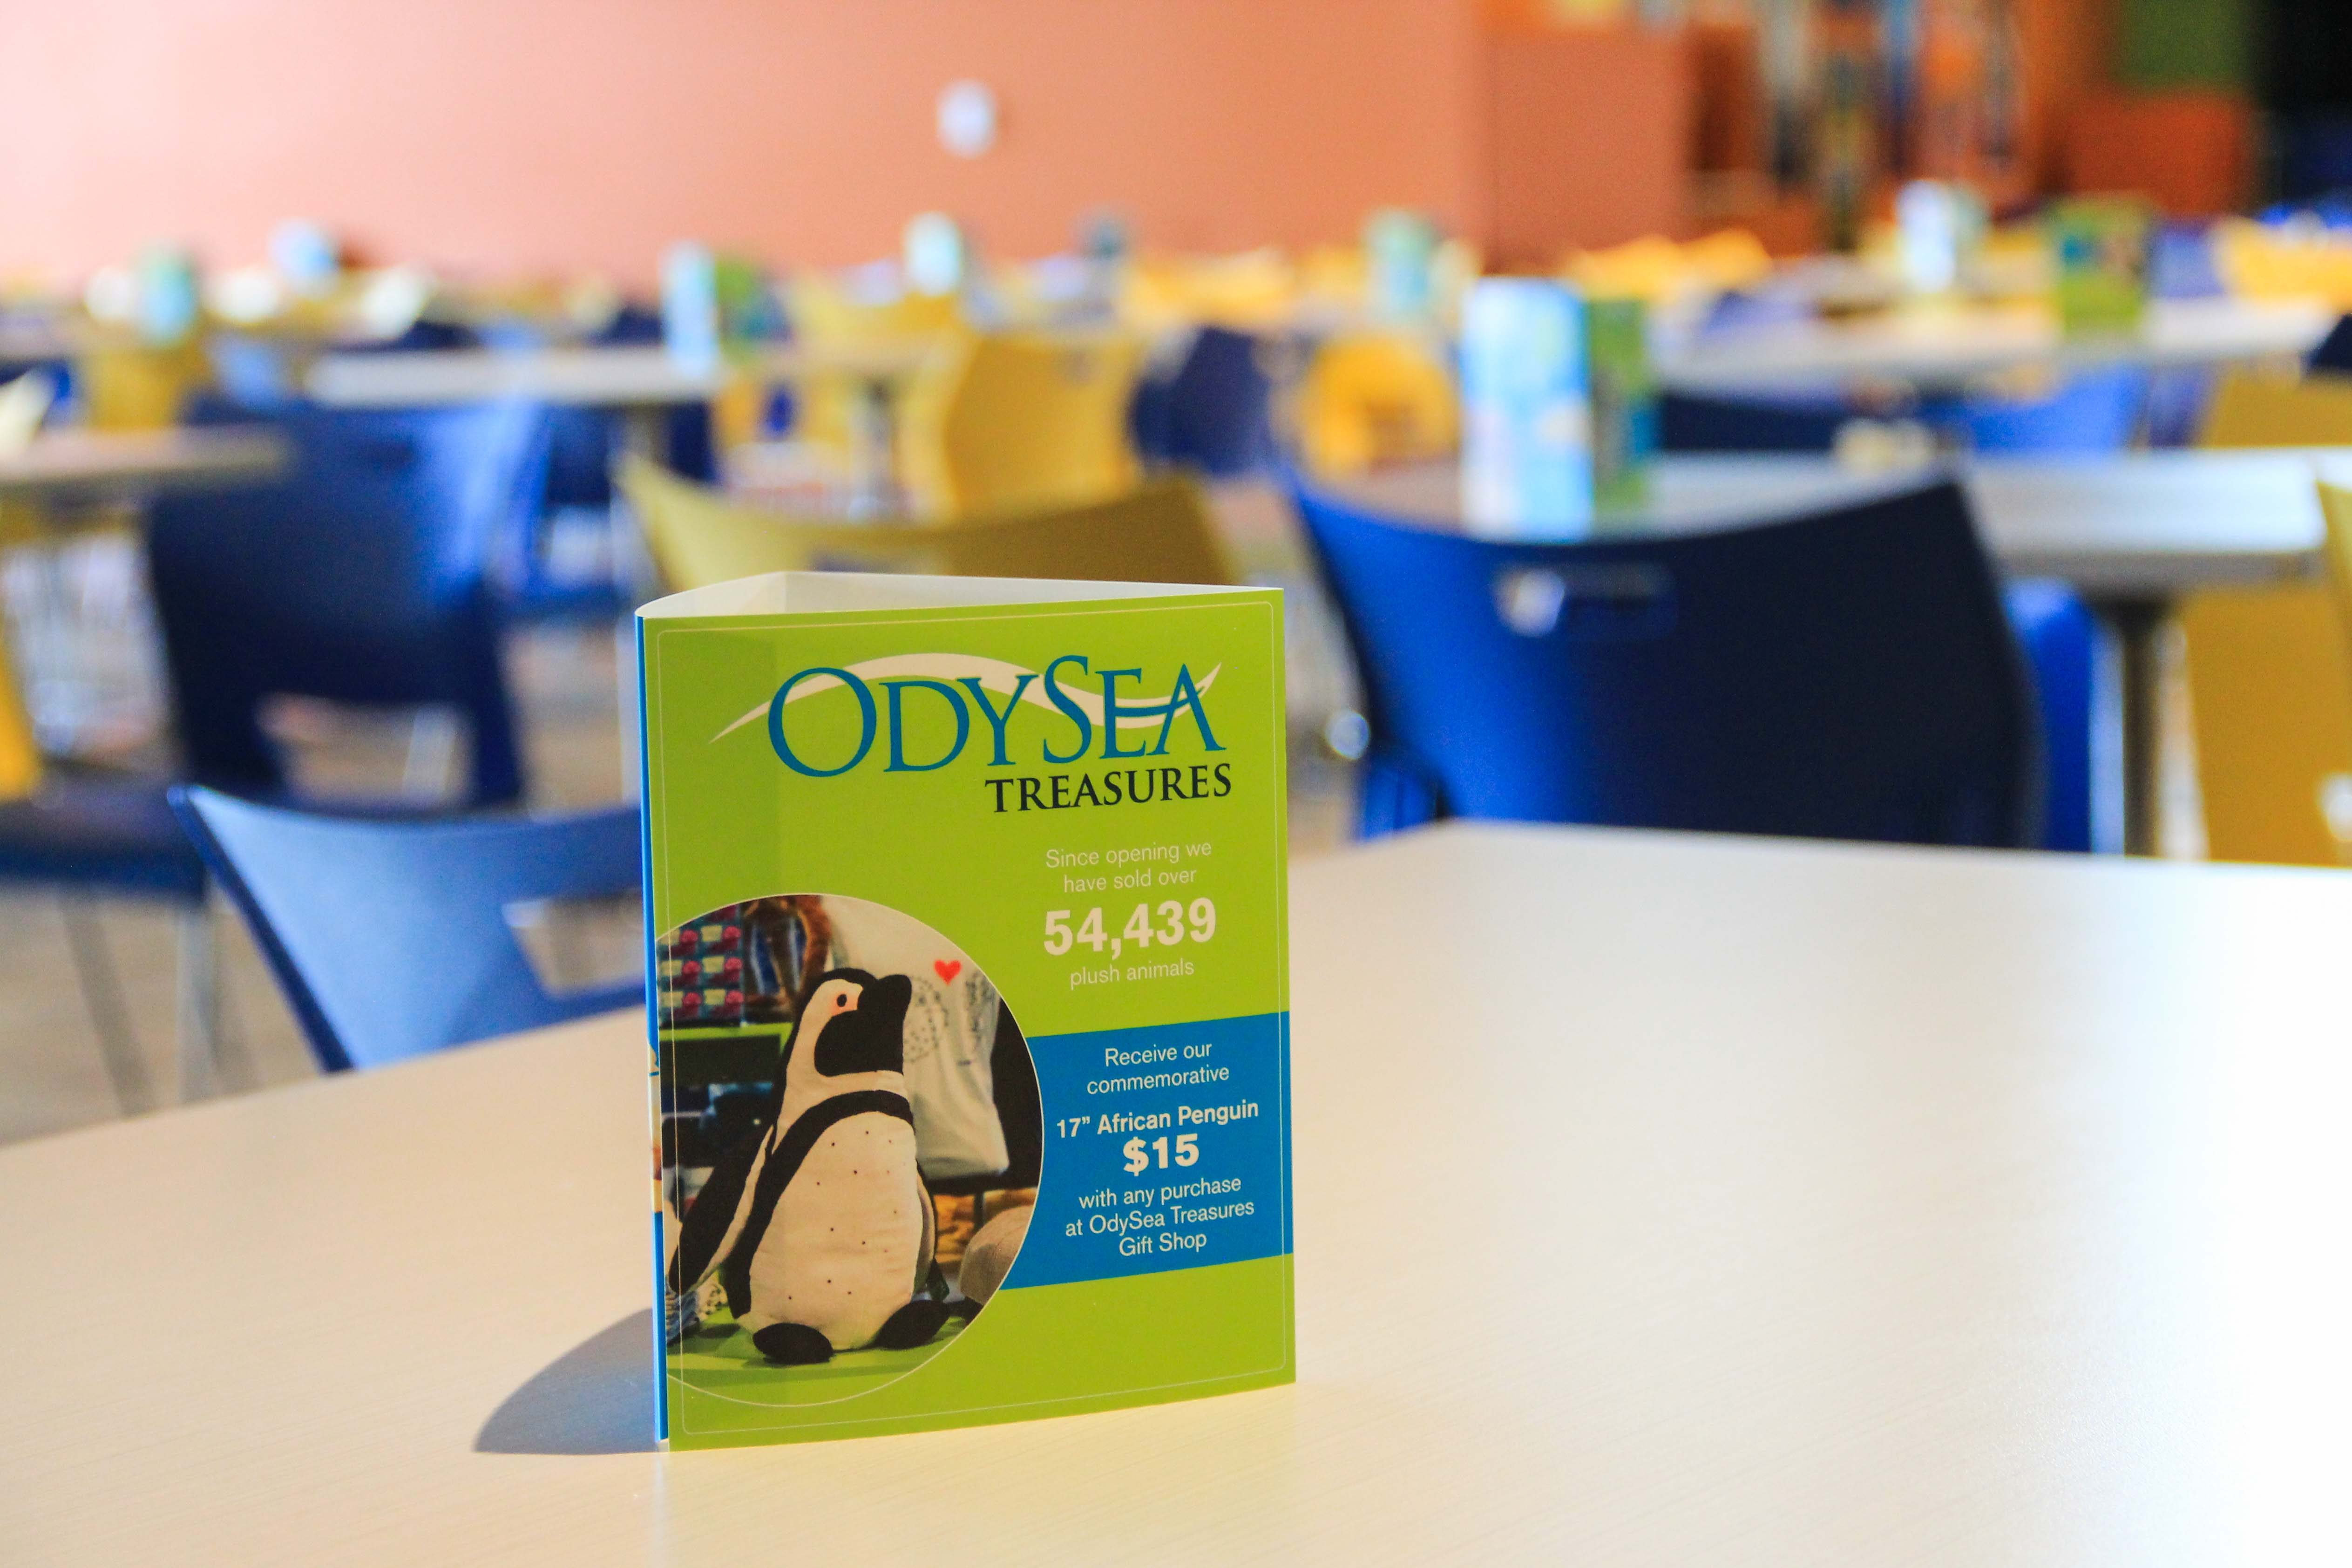 OdySea Aquarium Standing Triangle Table Tents Small Format Marketing Collateral